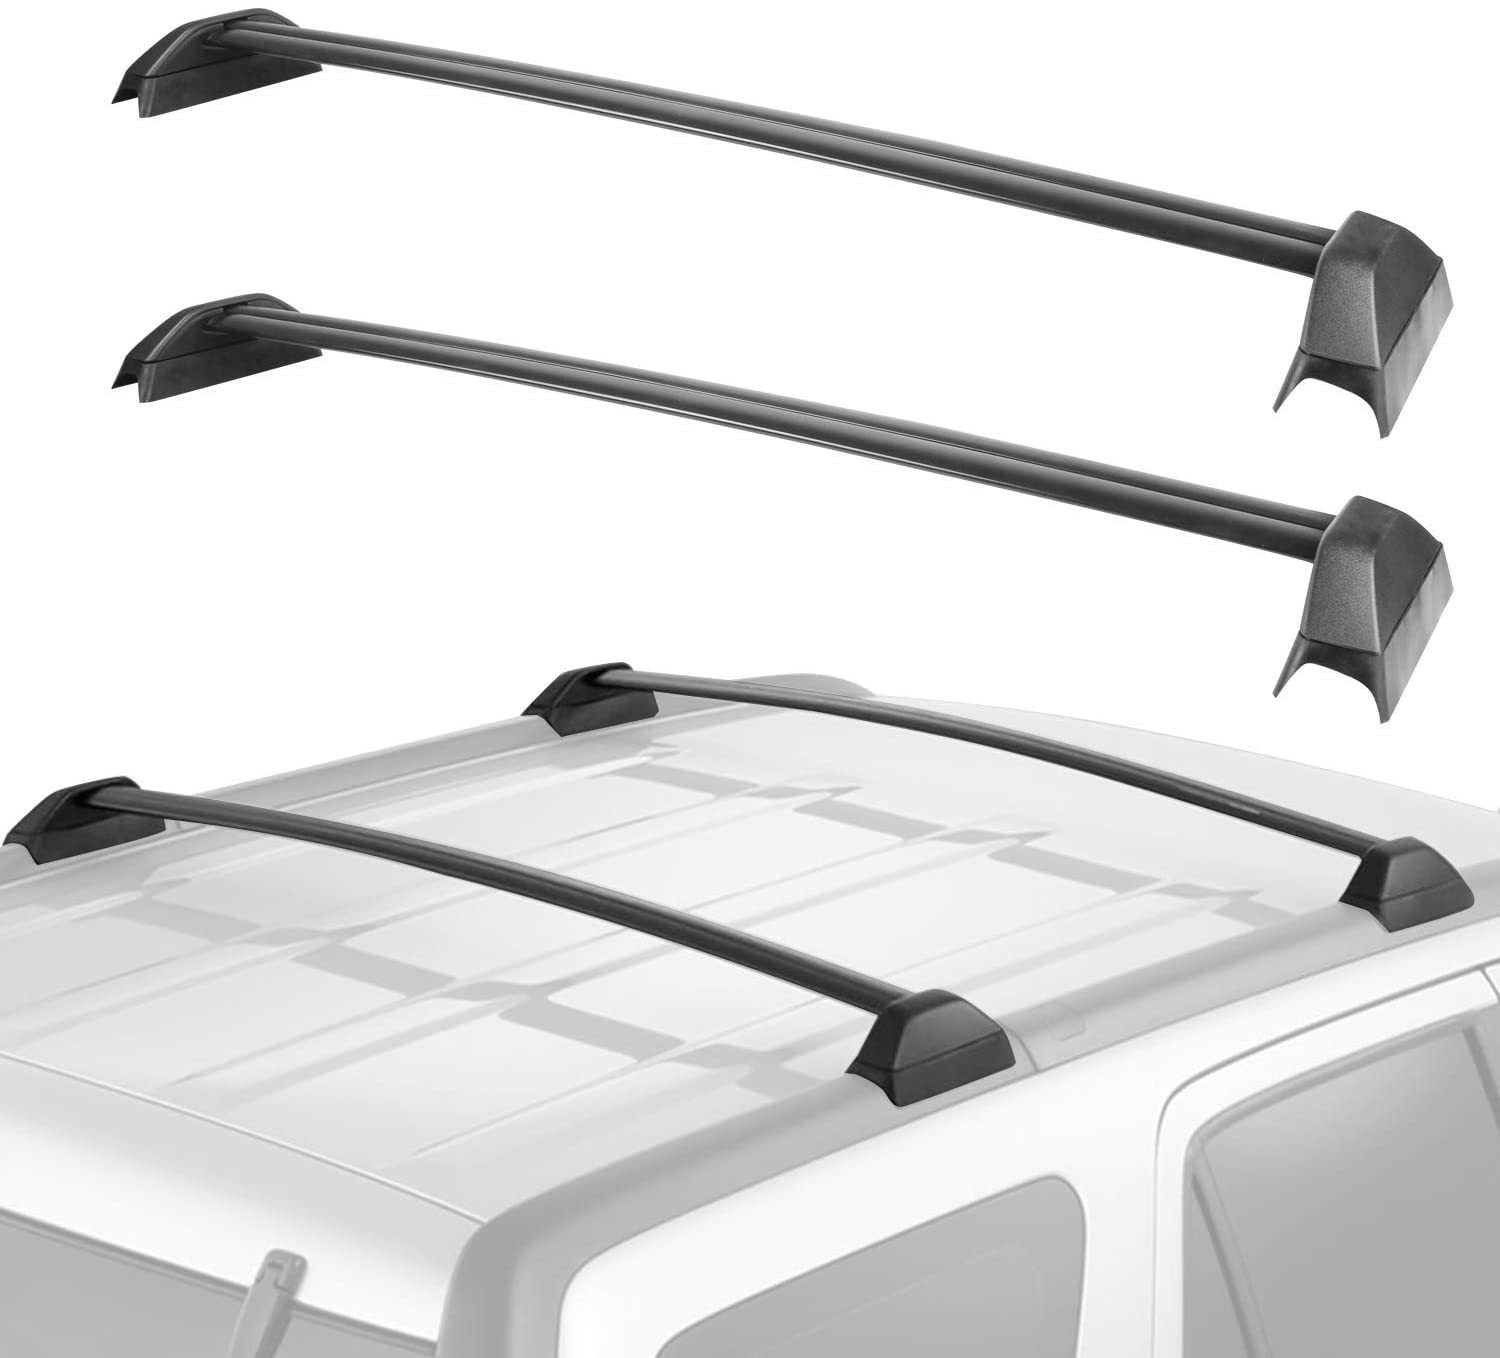 MOSTPLUS Roof Rack Cross Bar Rail Compatible with Honda CRV 2012 2013 2014 2015 2016 CR-V Cargo Racks Rooftop Luggage Canoe Kayak Carrier Rack